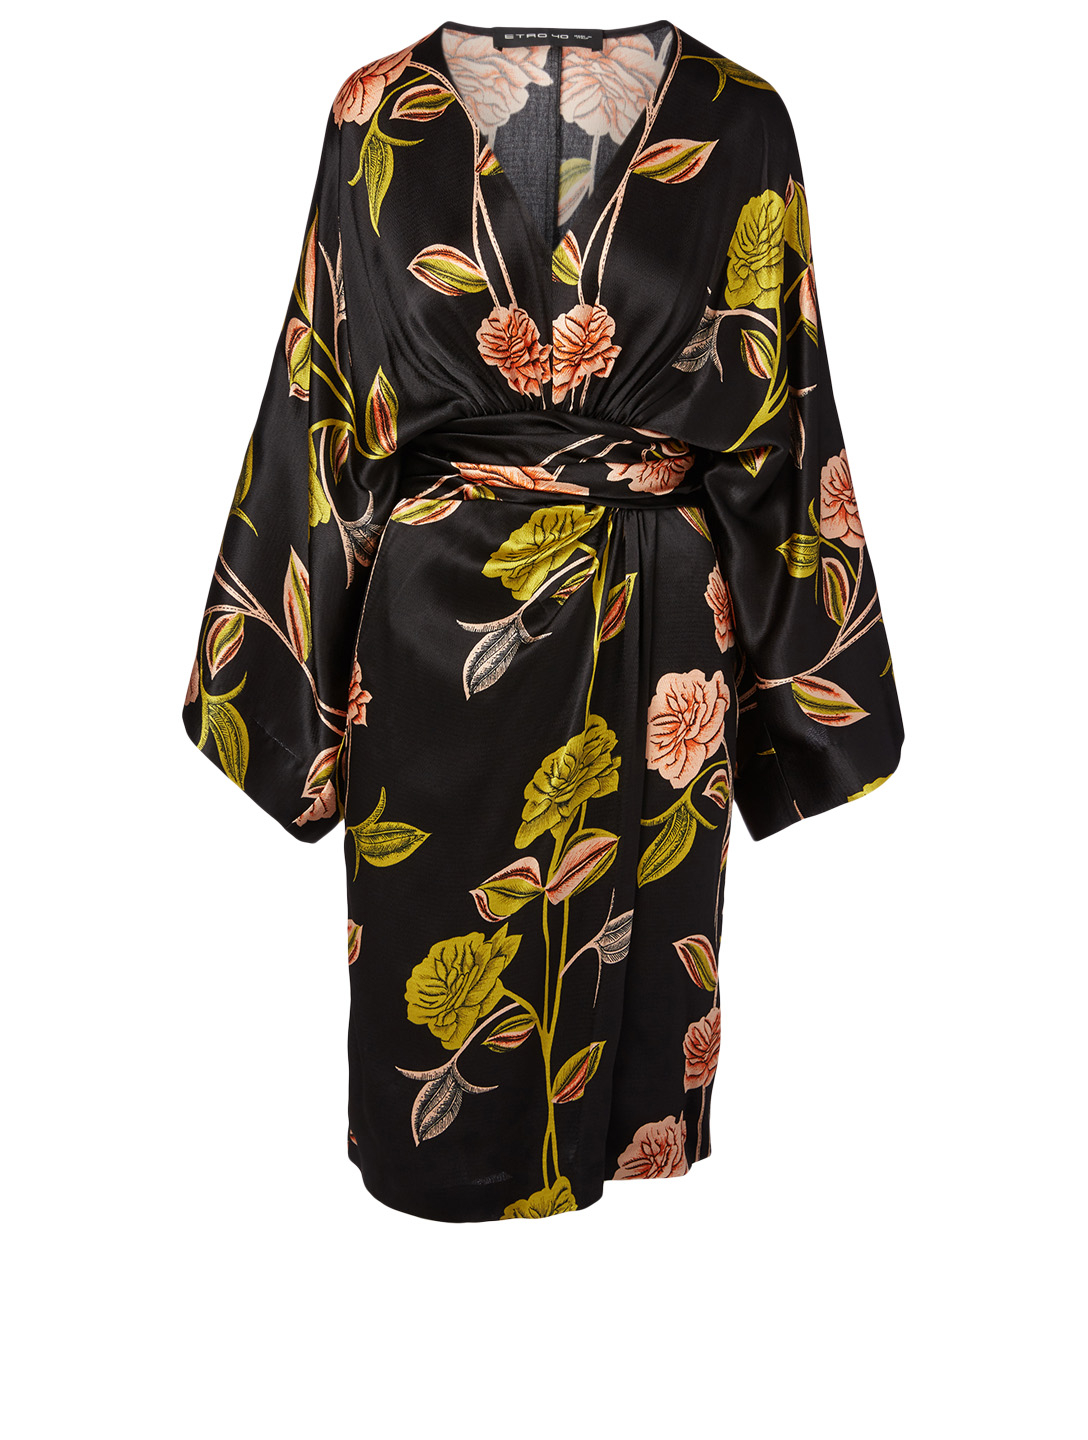 ETRO Satin Wrap Dress Women's Black